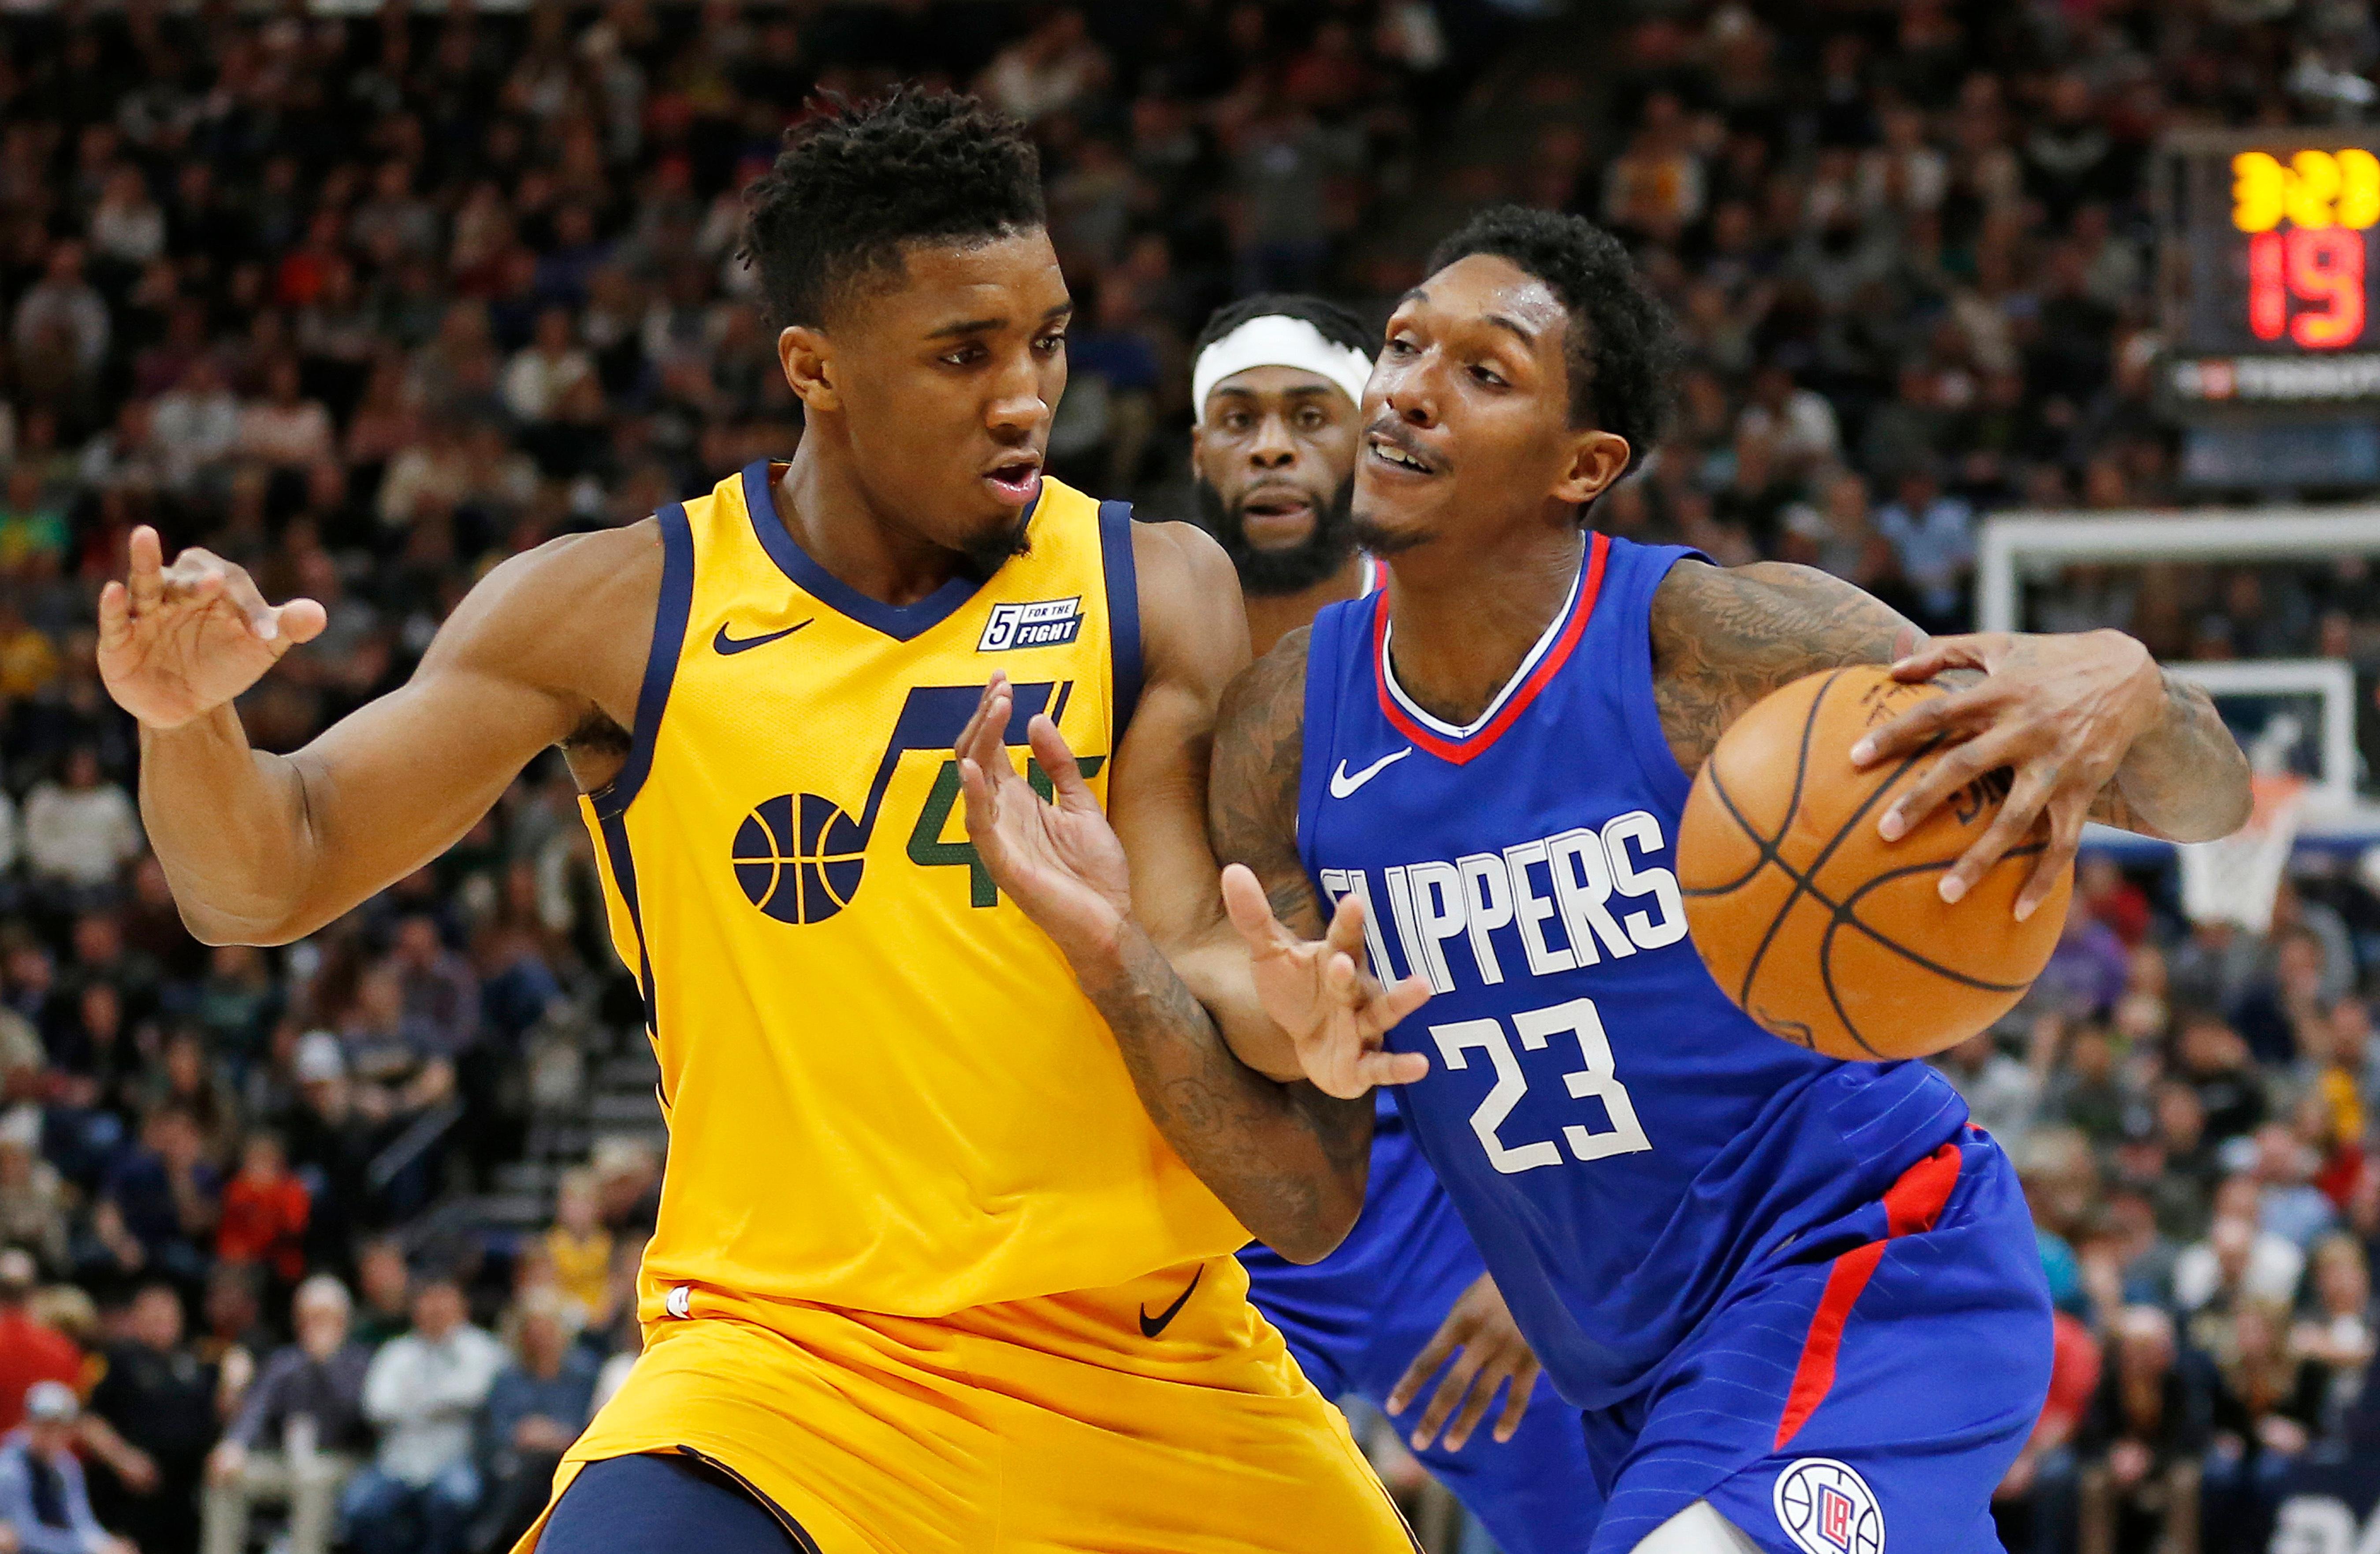 Utah Jazz guard Donovan Mitchell, left, guards Los Angeles Clippers guard Lou Williams (23) in the first half during an NBA basketball game Saturday, Jan. 20, 2018, in Salt Lake City. (AP Photo/Rick Bowmer)